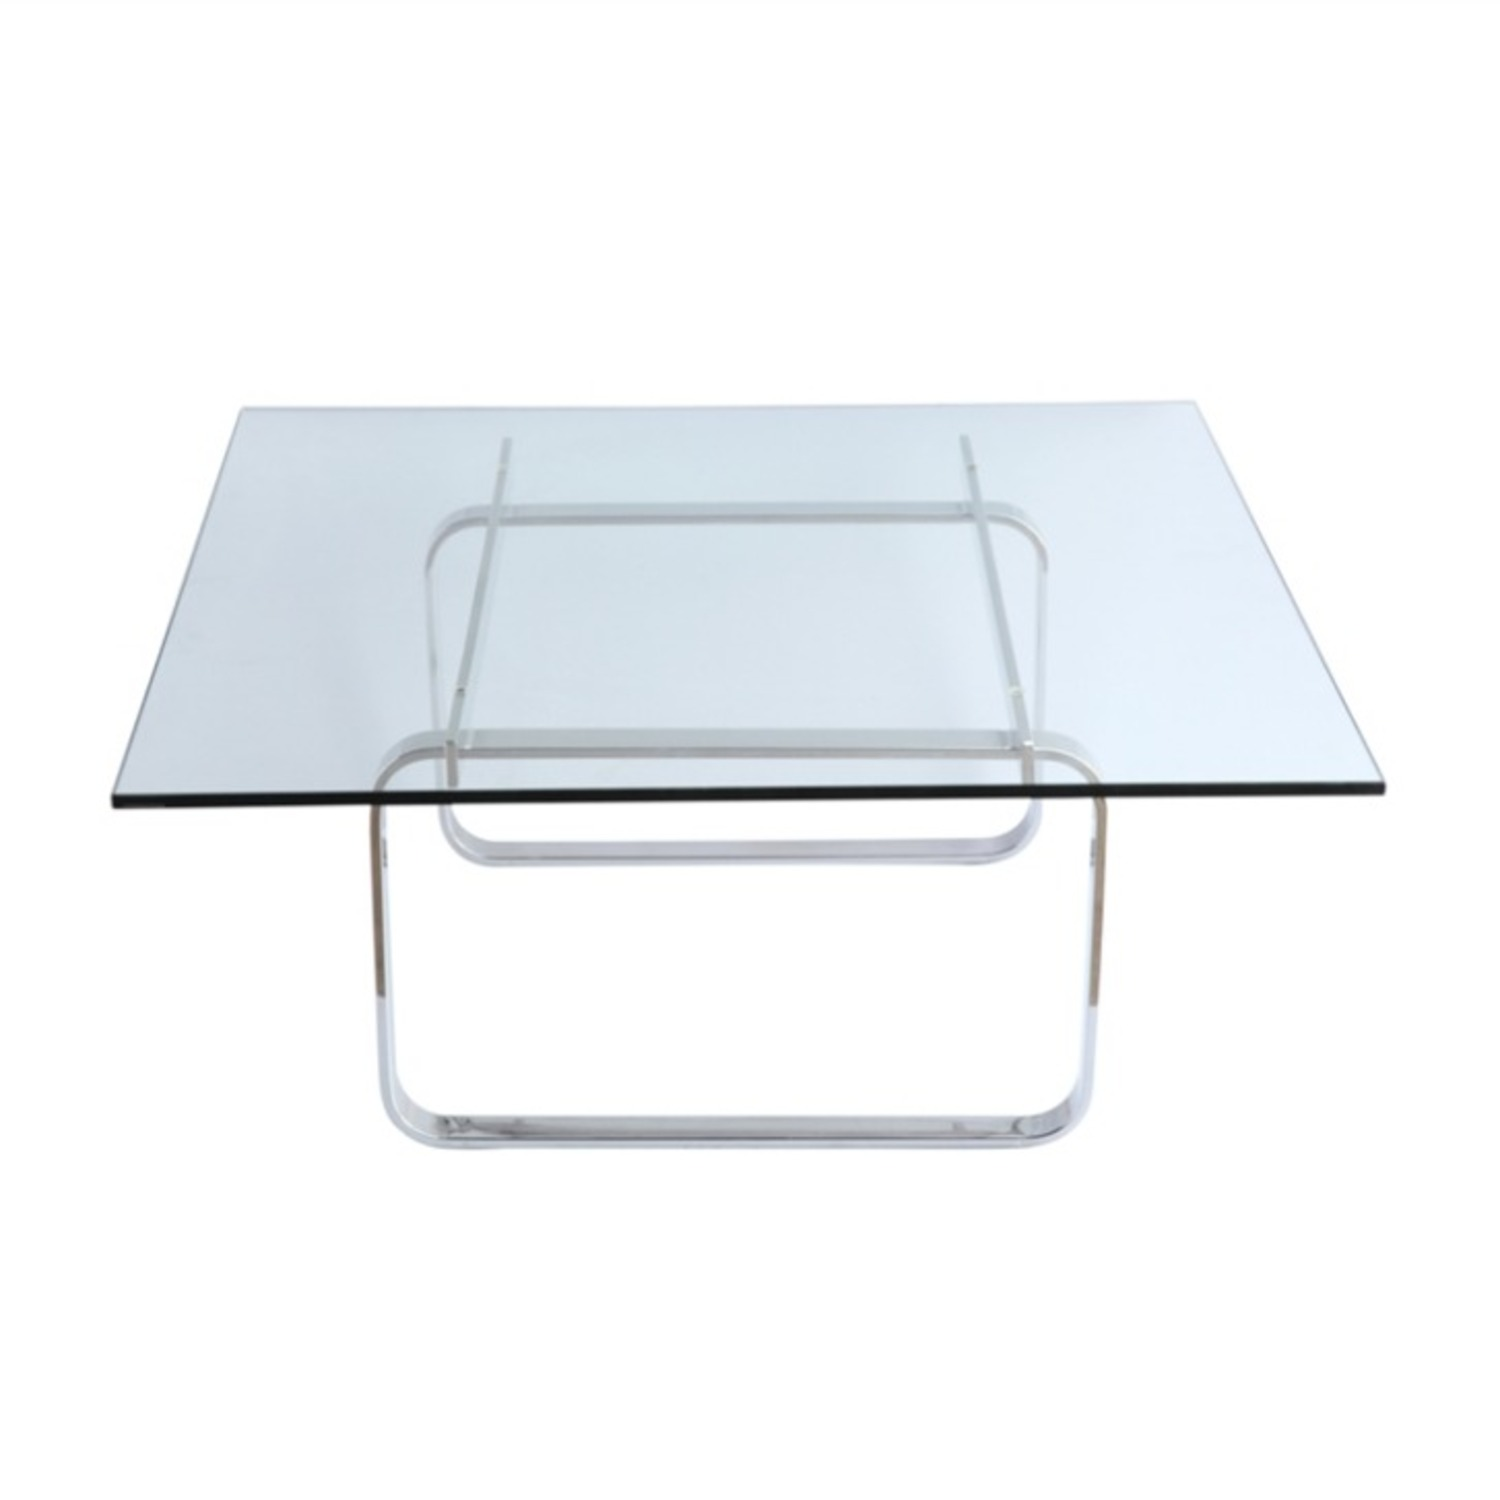 Coffee Table In Clear Stainless Steel - image-3